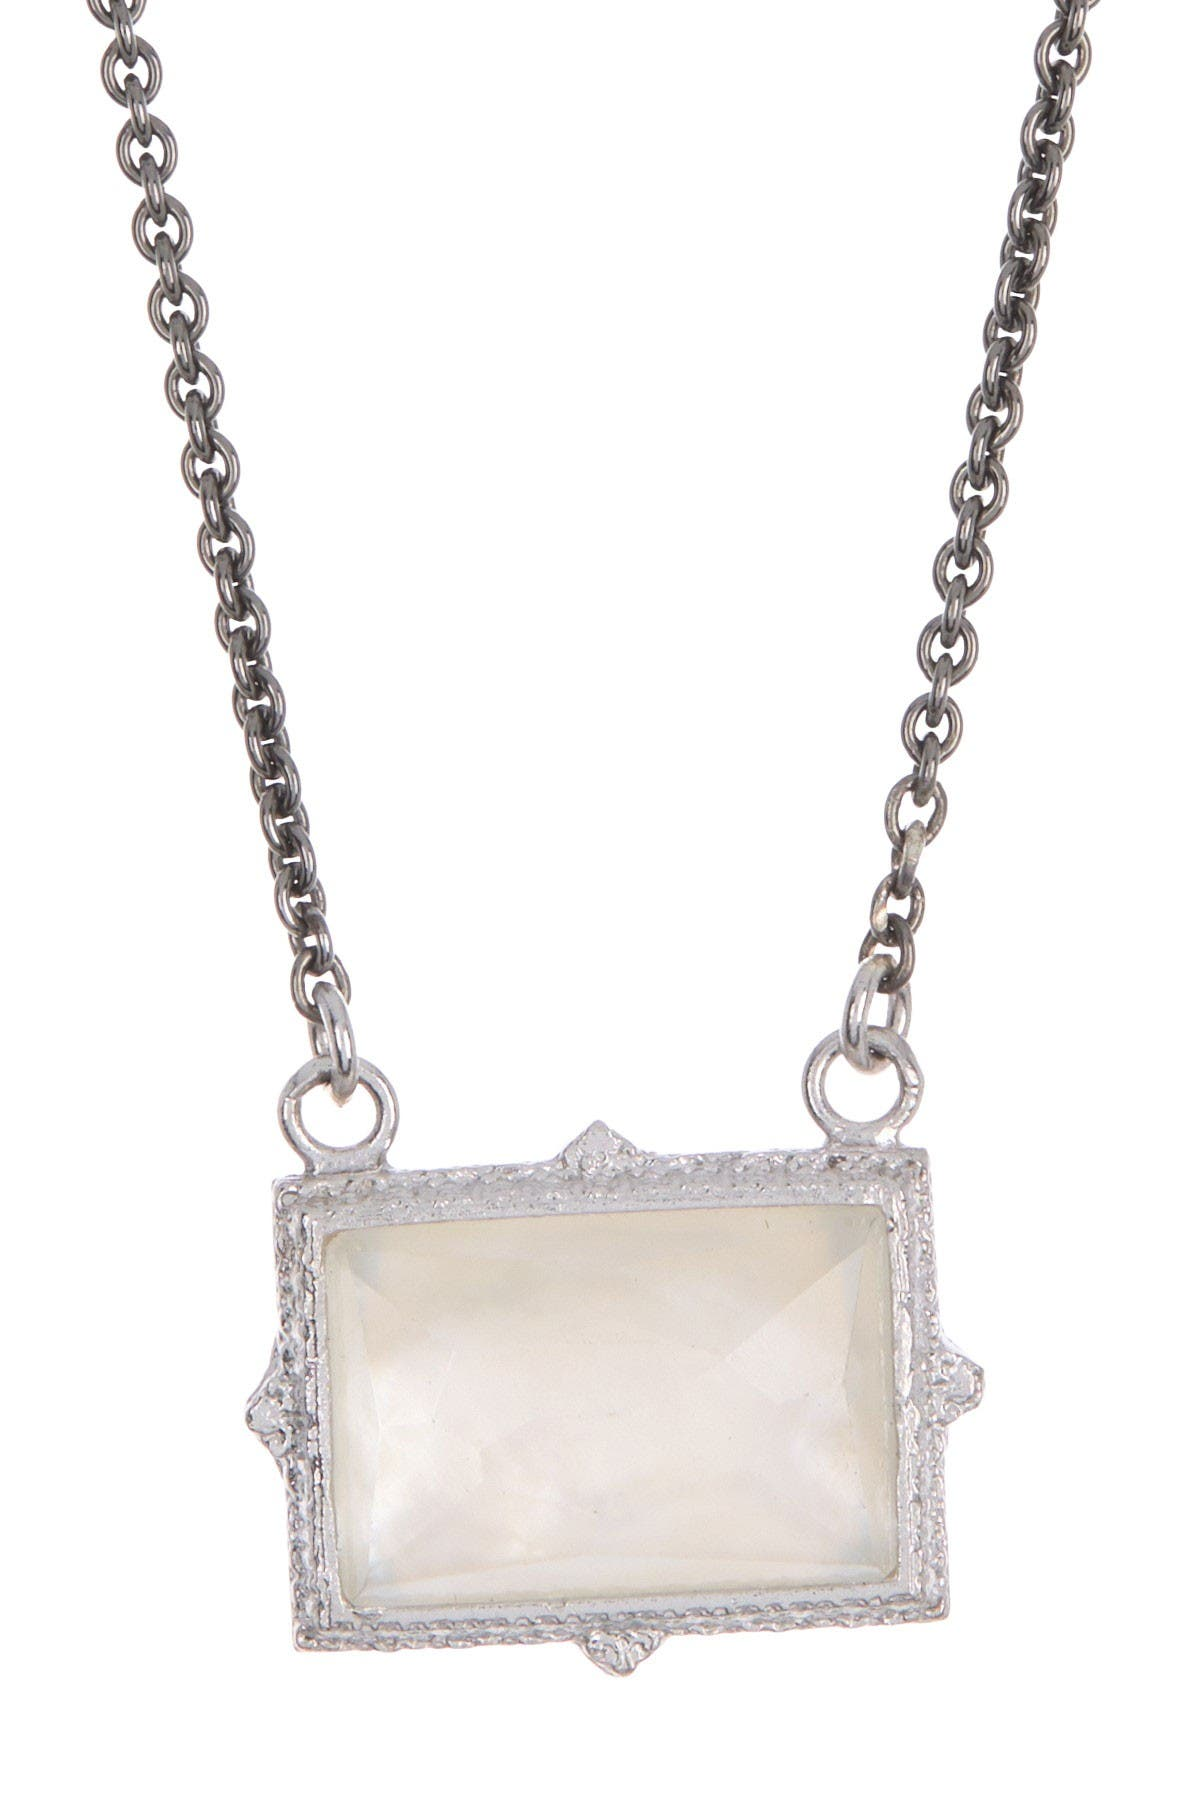 Image of ARMENTA New World Topaz Pendant Sterling Silver Necklace